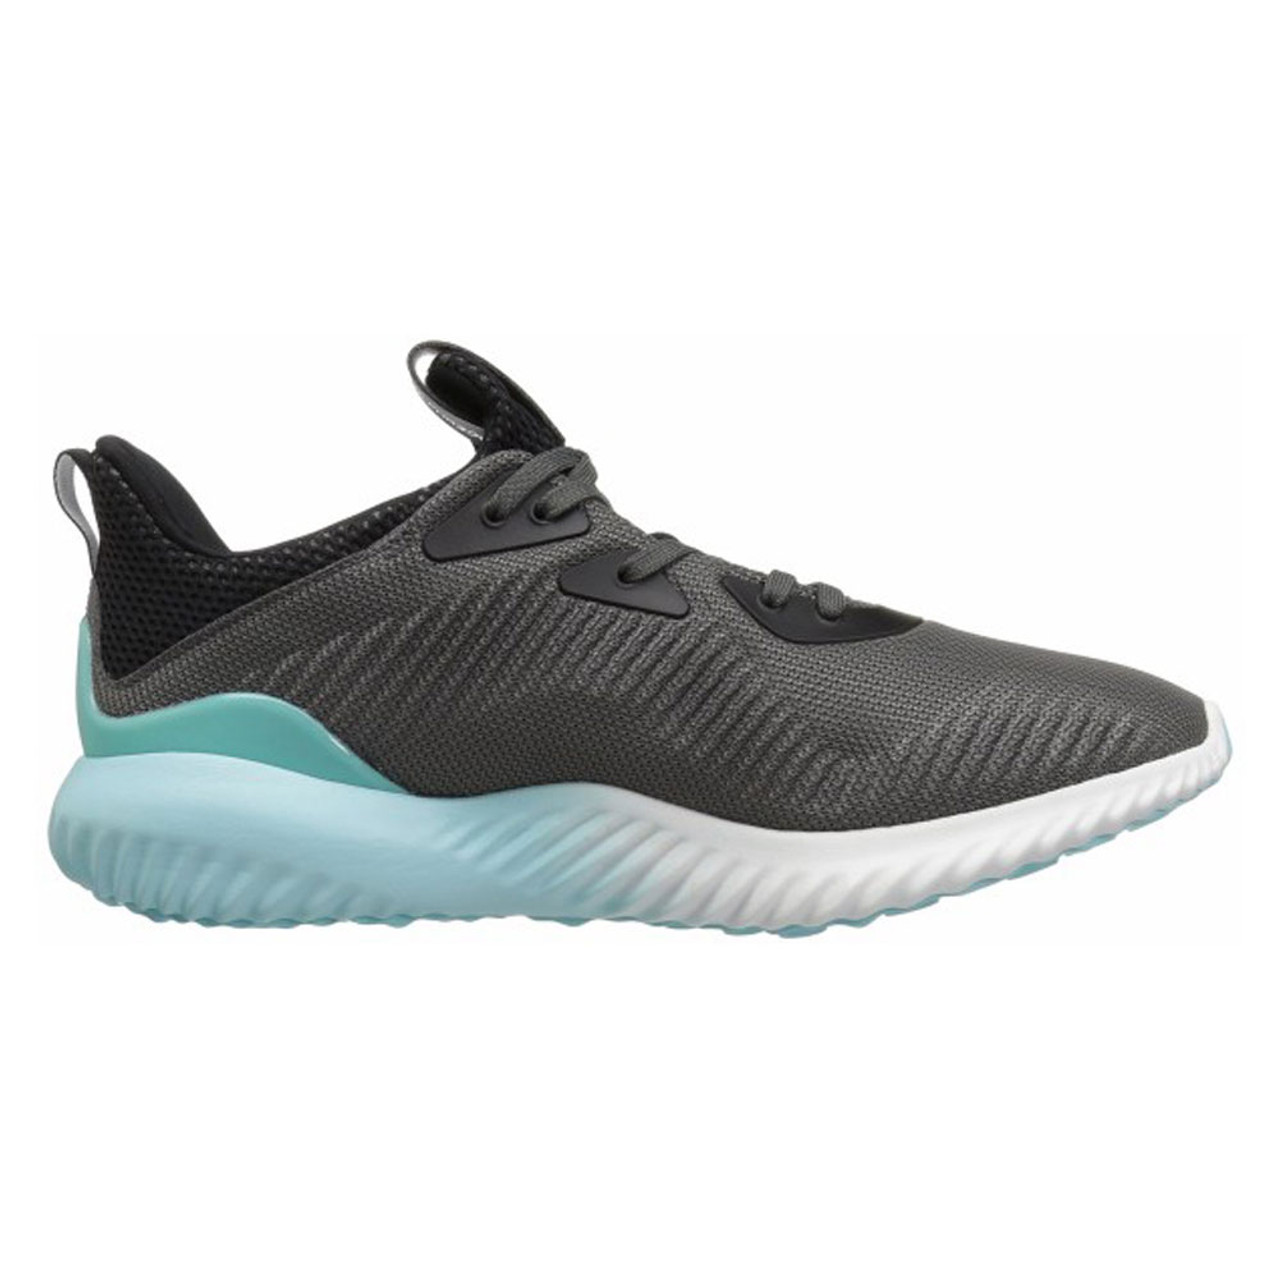 68e65a3fc Adidas Women s Alphabounce Running Shoe Granite Black - Shop now    Shoolu.com